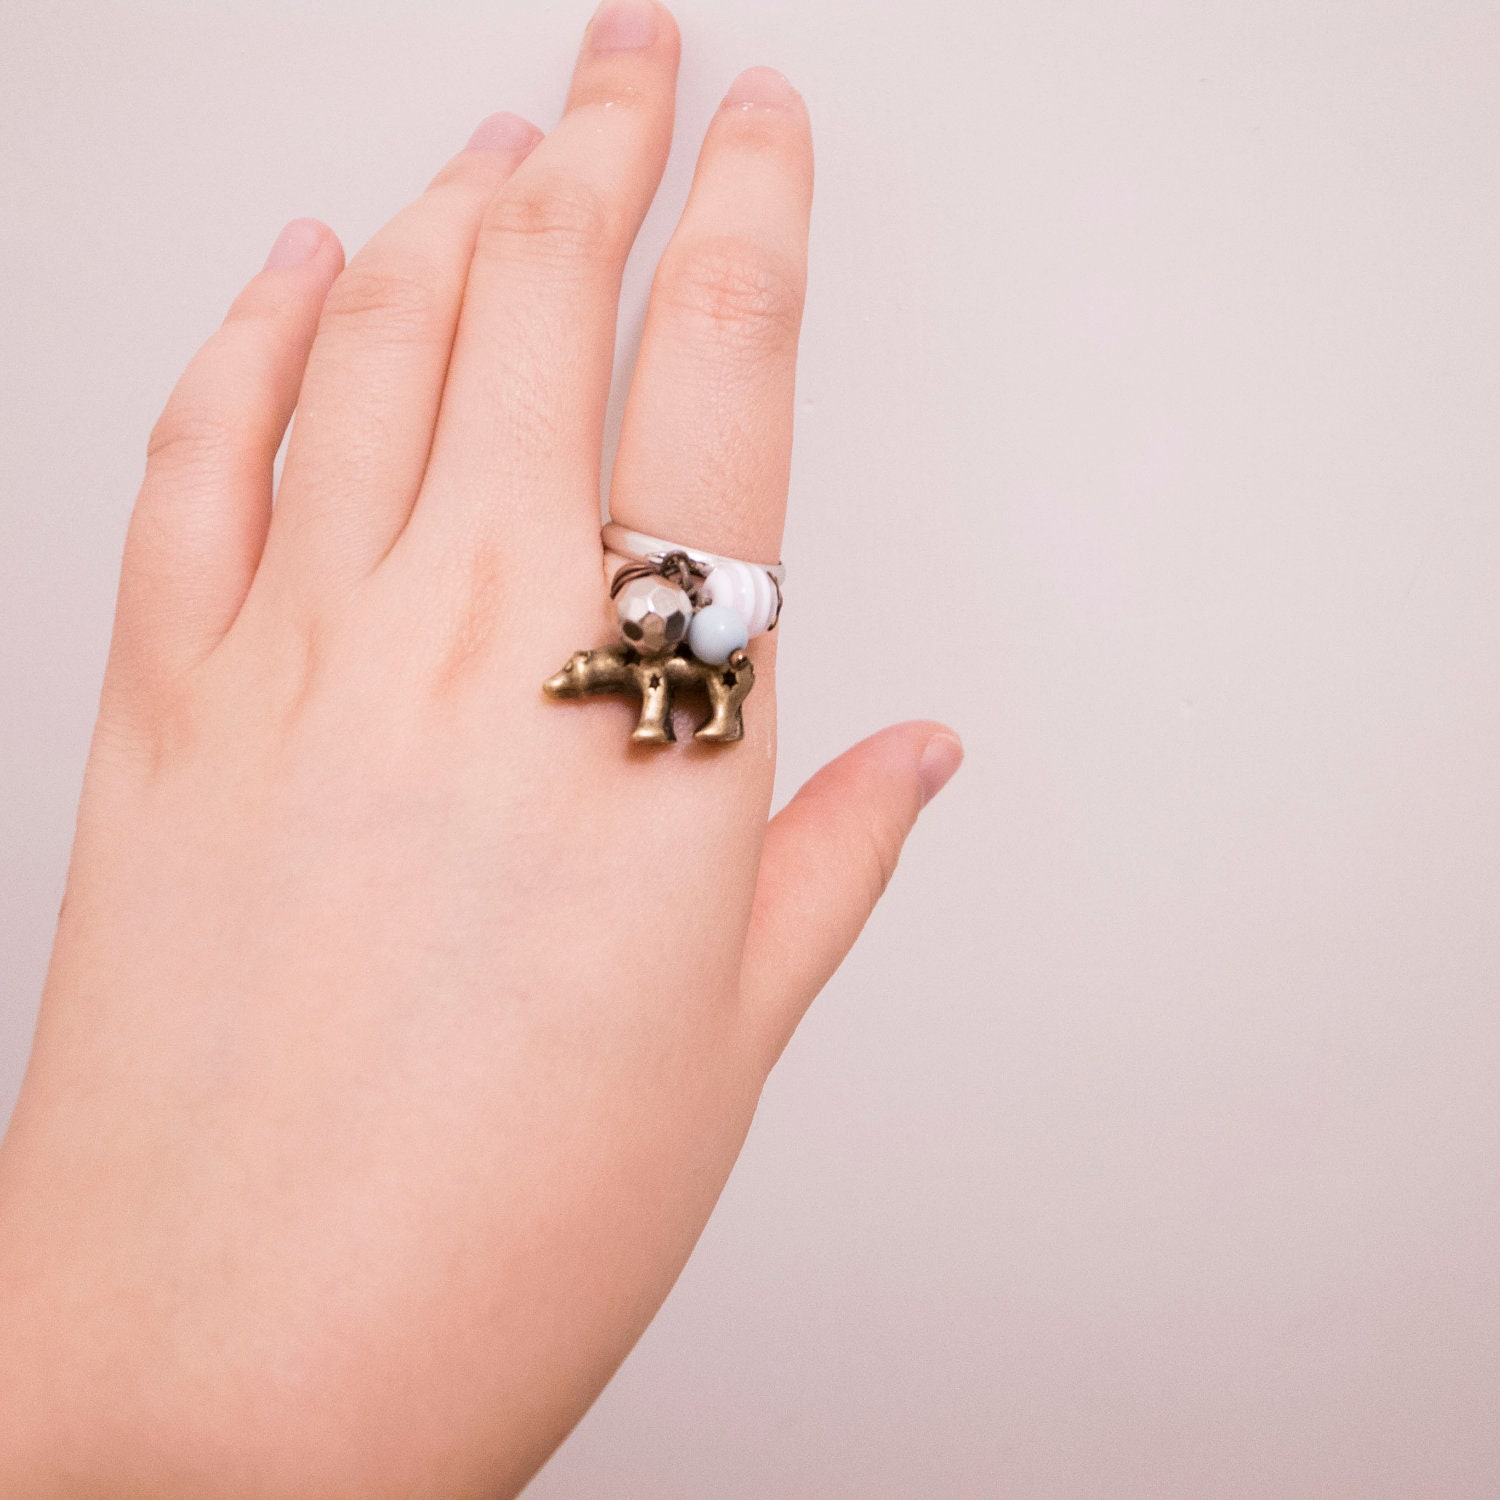 Cute Bear Charm Ring with Mint Blue and Silver Beads, Adjustable Ring, First Finger Ring, Bear Charm Necklace